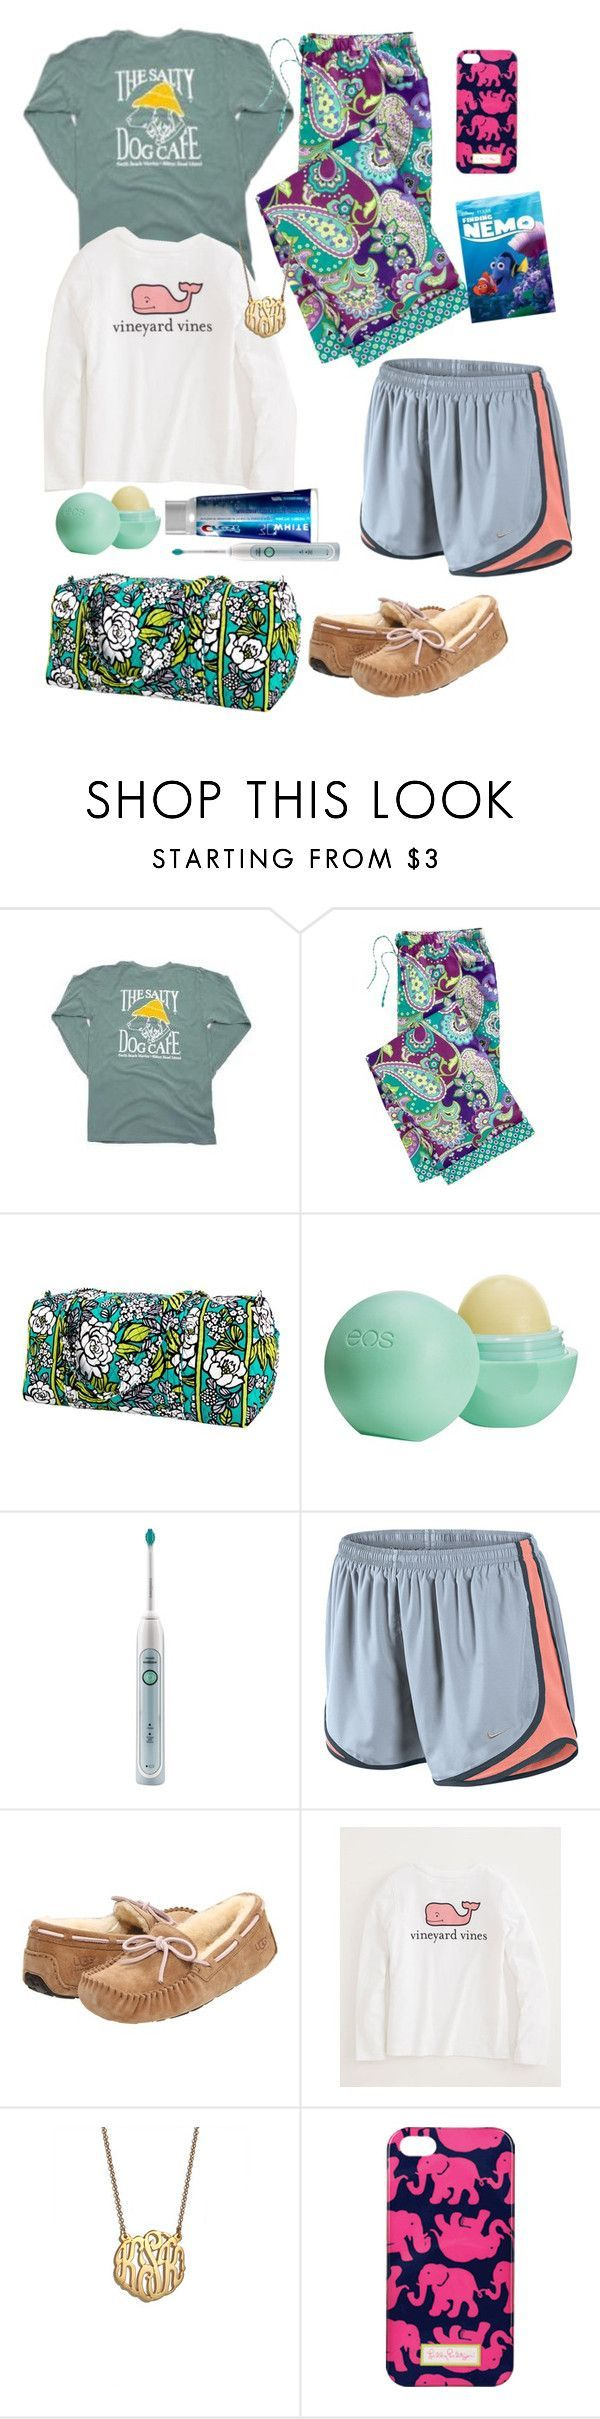 Sleepover by preppy-ever-after on Polyvore featuring Vera Bradley, NIKE, UGG Australia, BaubleBar, Lilly Pulitzer, Eos, Vineyard Vines and Philips Sonicare